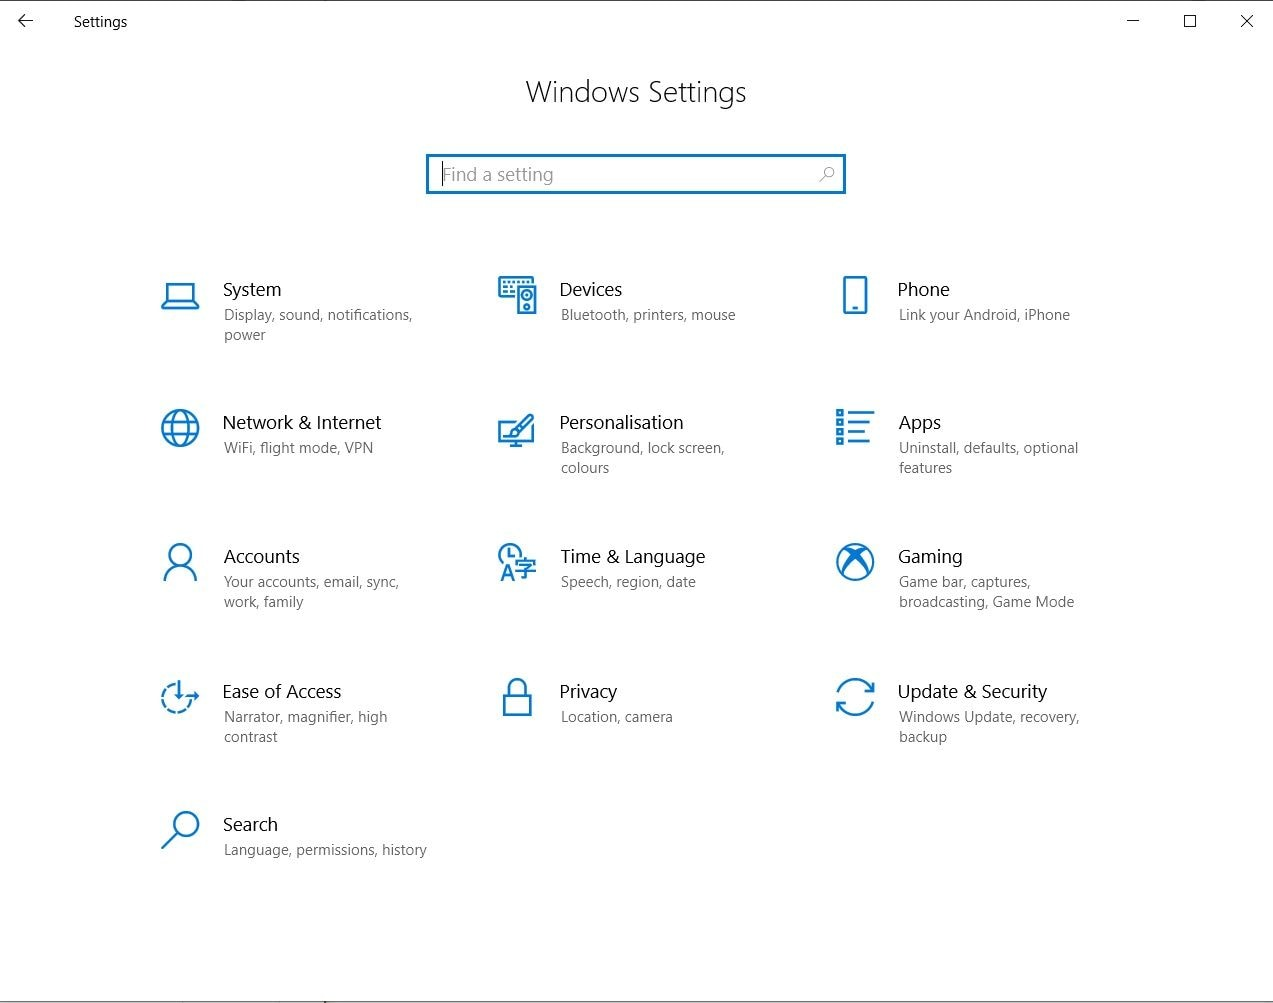 select system in Windows Settings